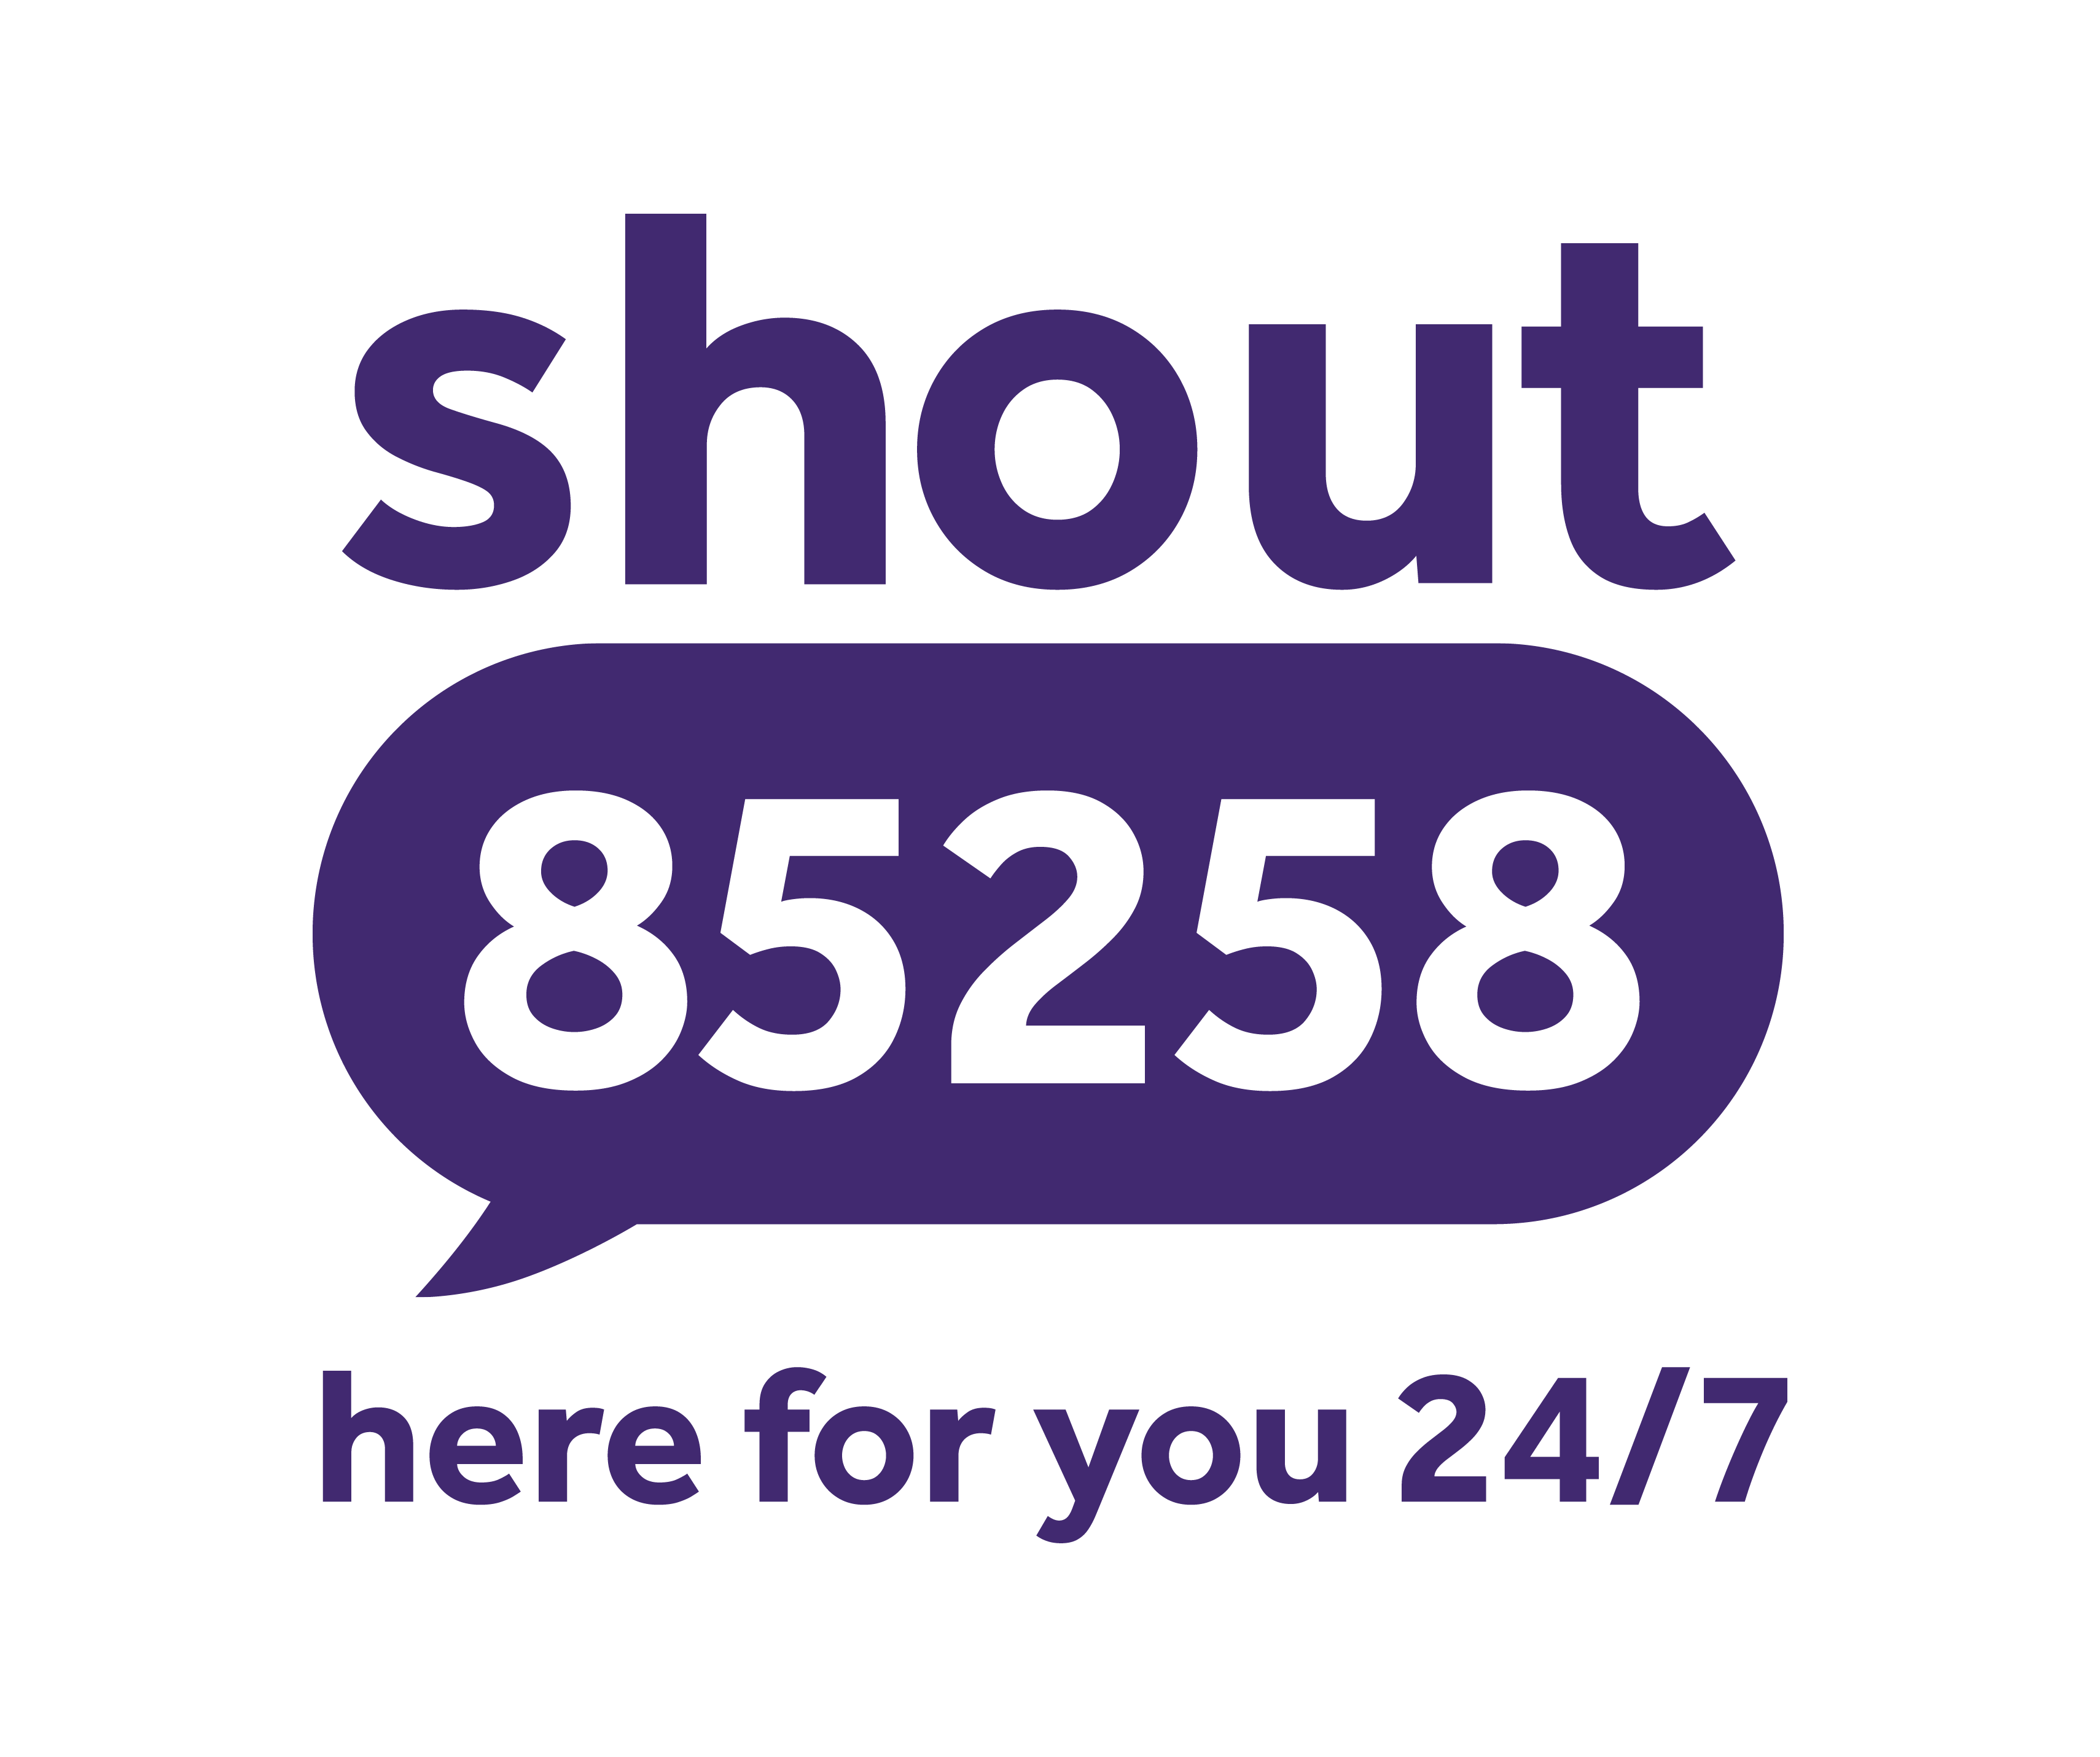 Share the number | Shout 85258